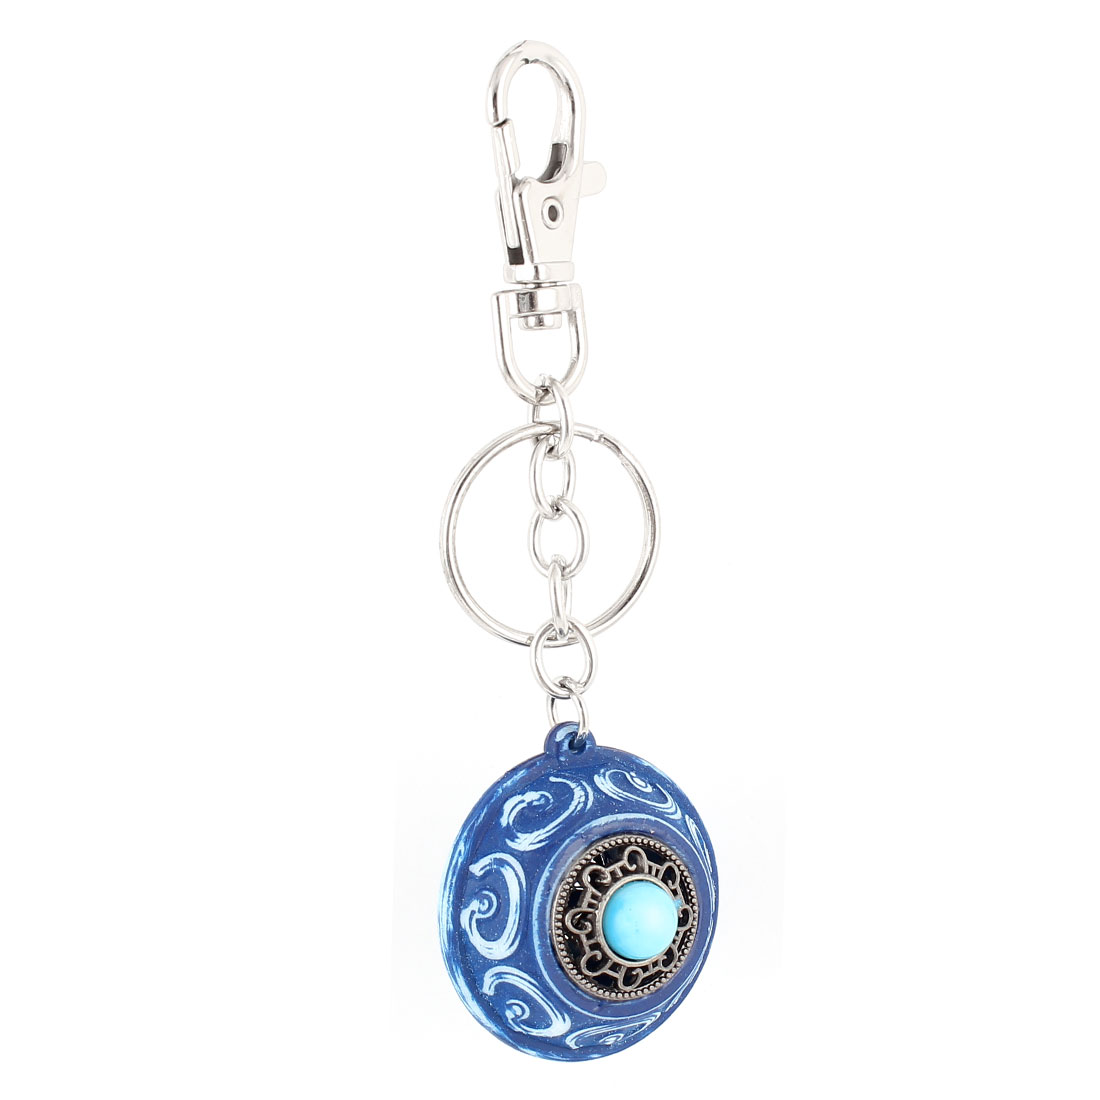 Metal Hollow Out Bells Pendant Bag Decor Keychain Key Holder Keyring Blue